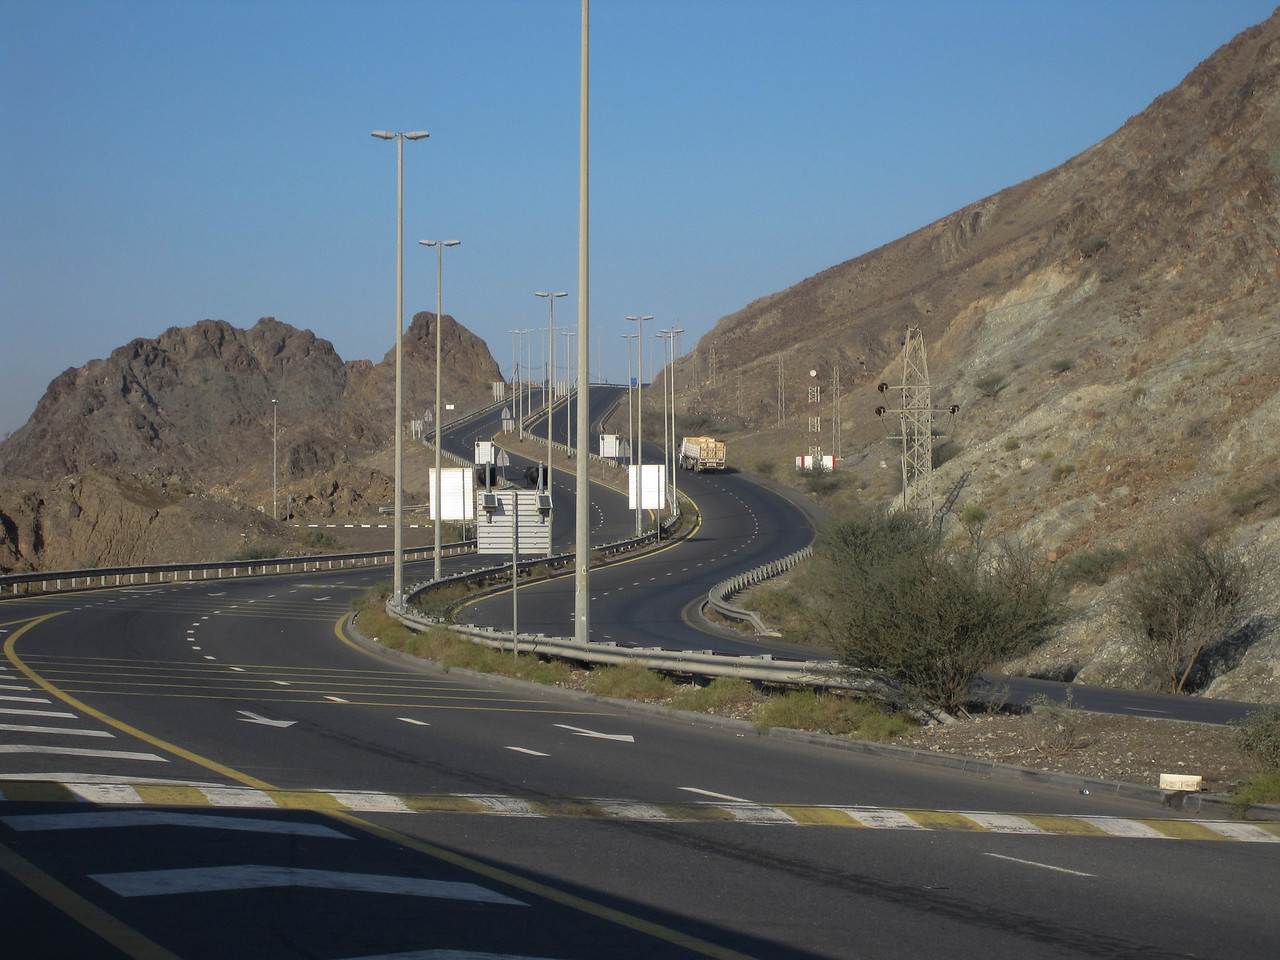 Rural Road - Dubai, UAE